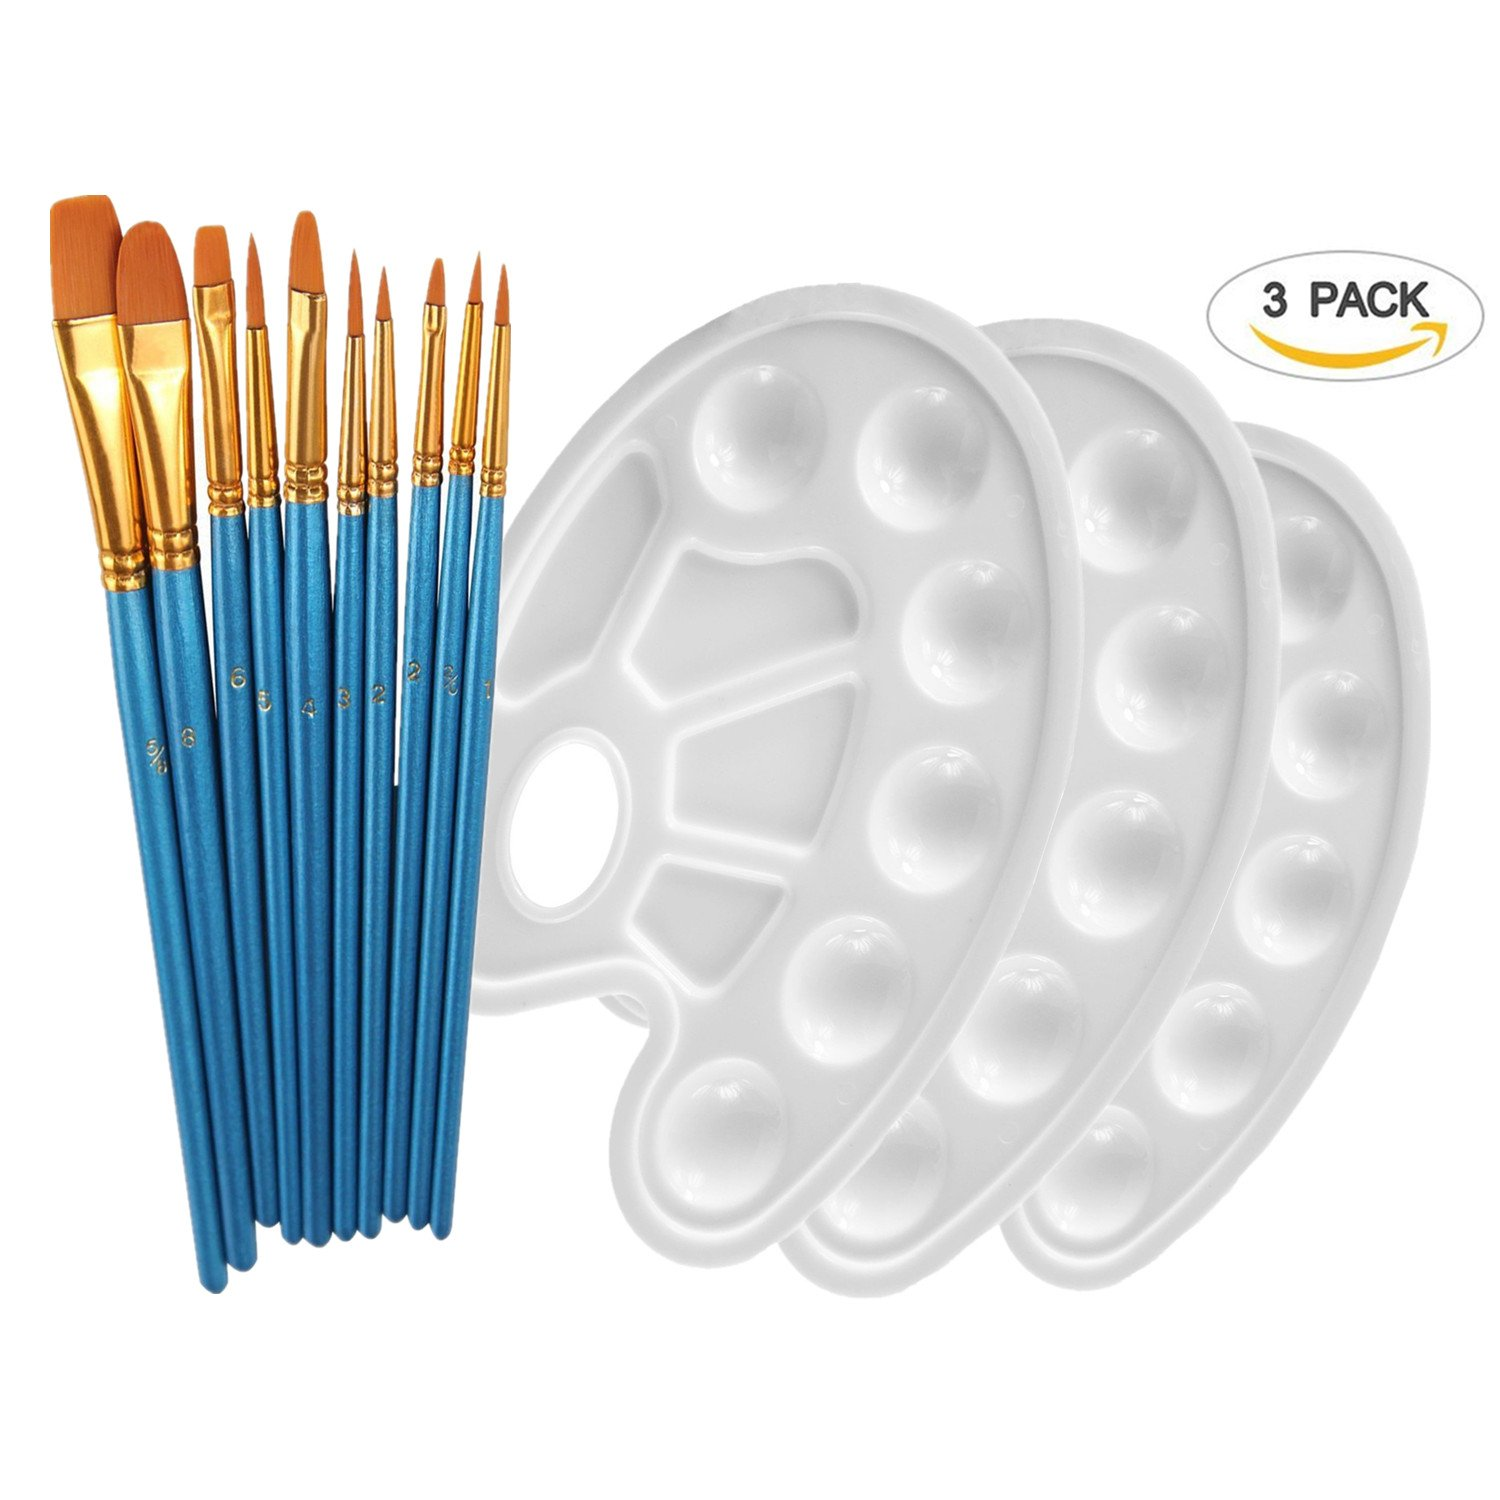 YOBAYE 10Pieces Round Pointed Tip Nylon Hair Brush Set With 3 Piece Paint Tray Palette